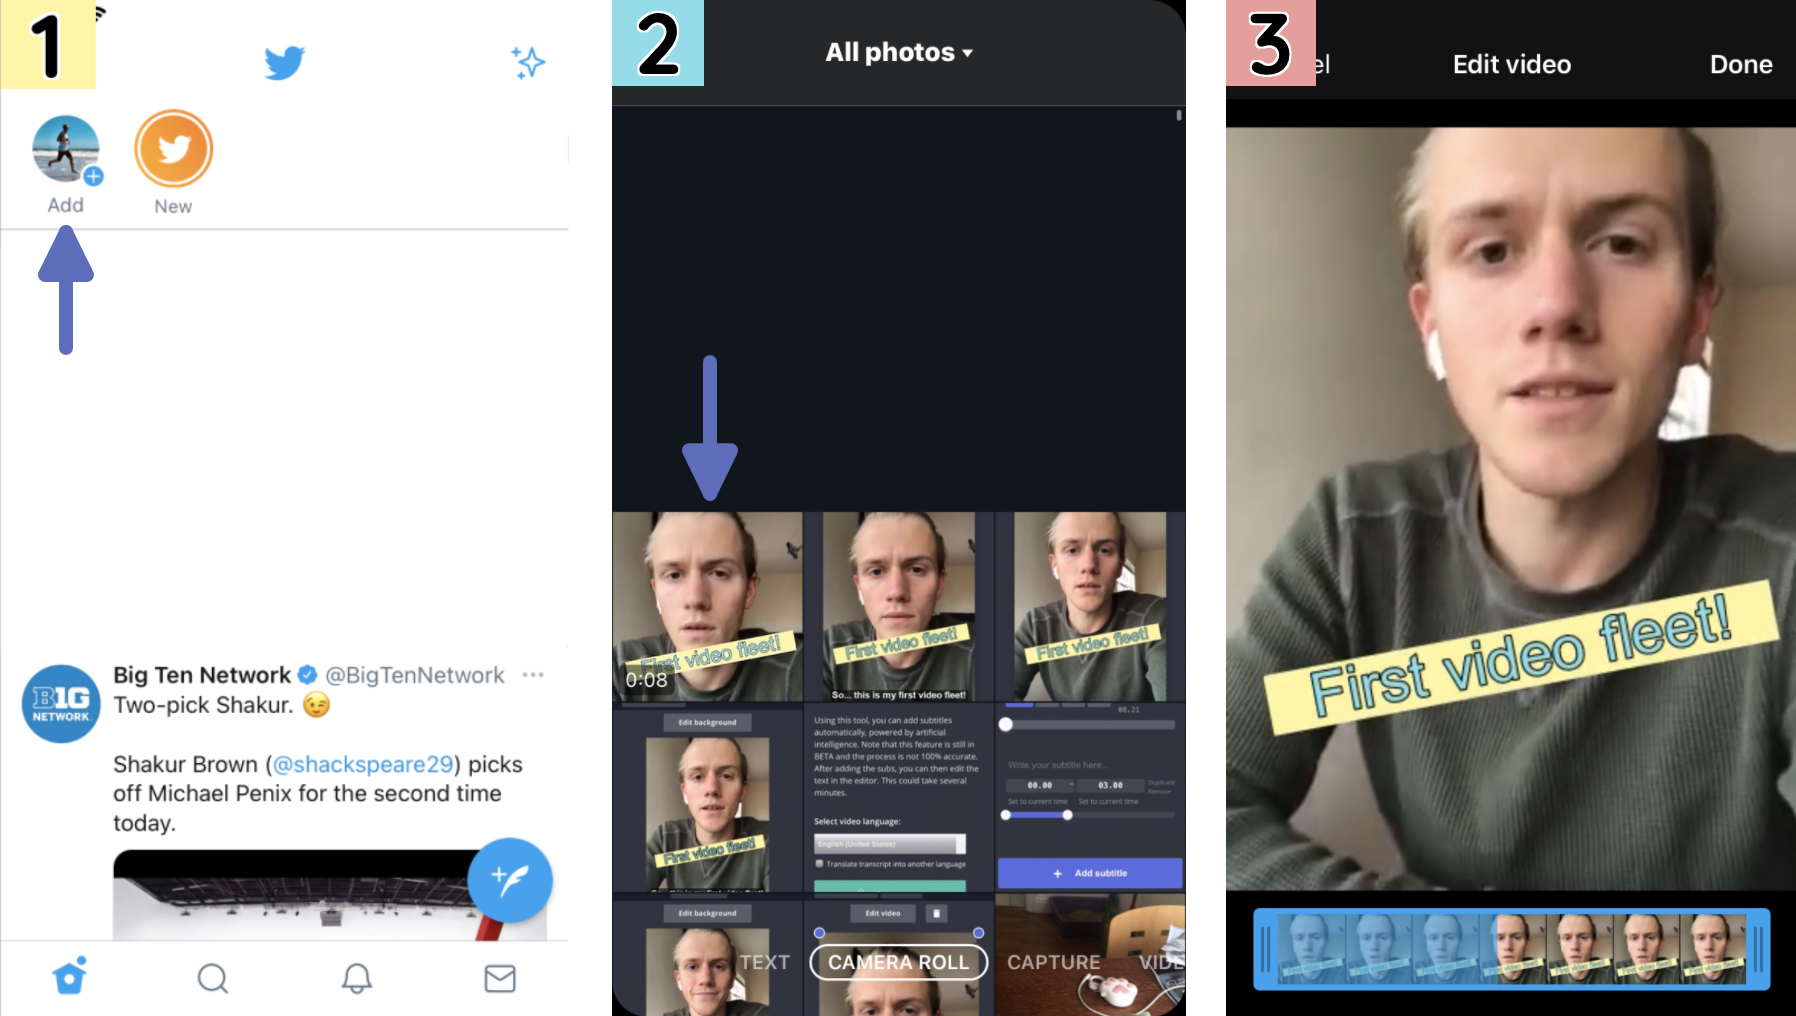 Screenshots demonstrating how to add a video Fleet from your Camera Roll.